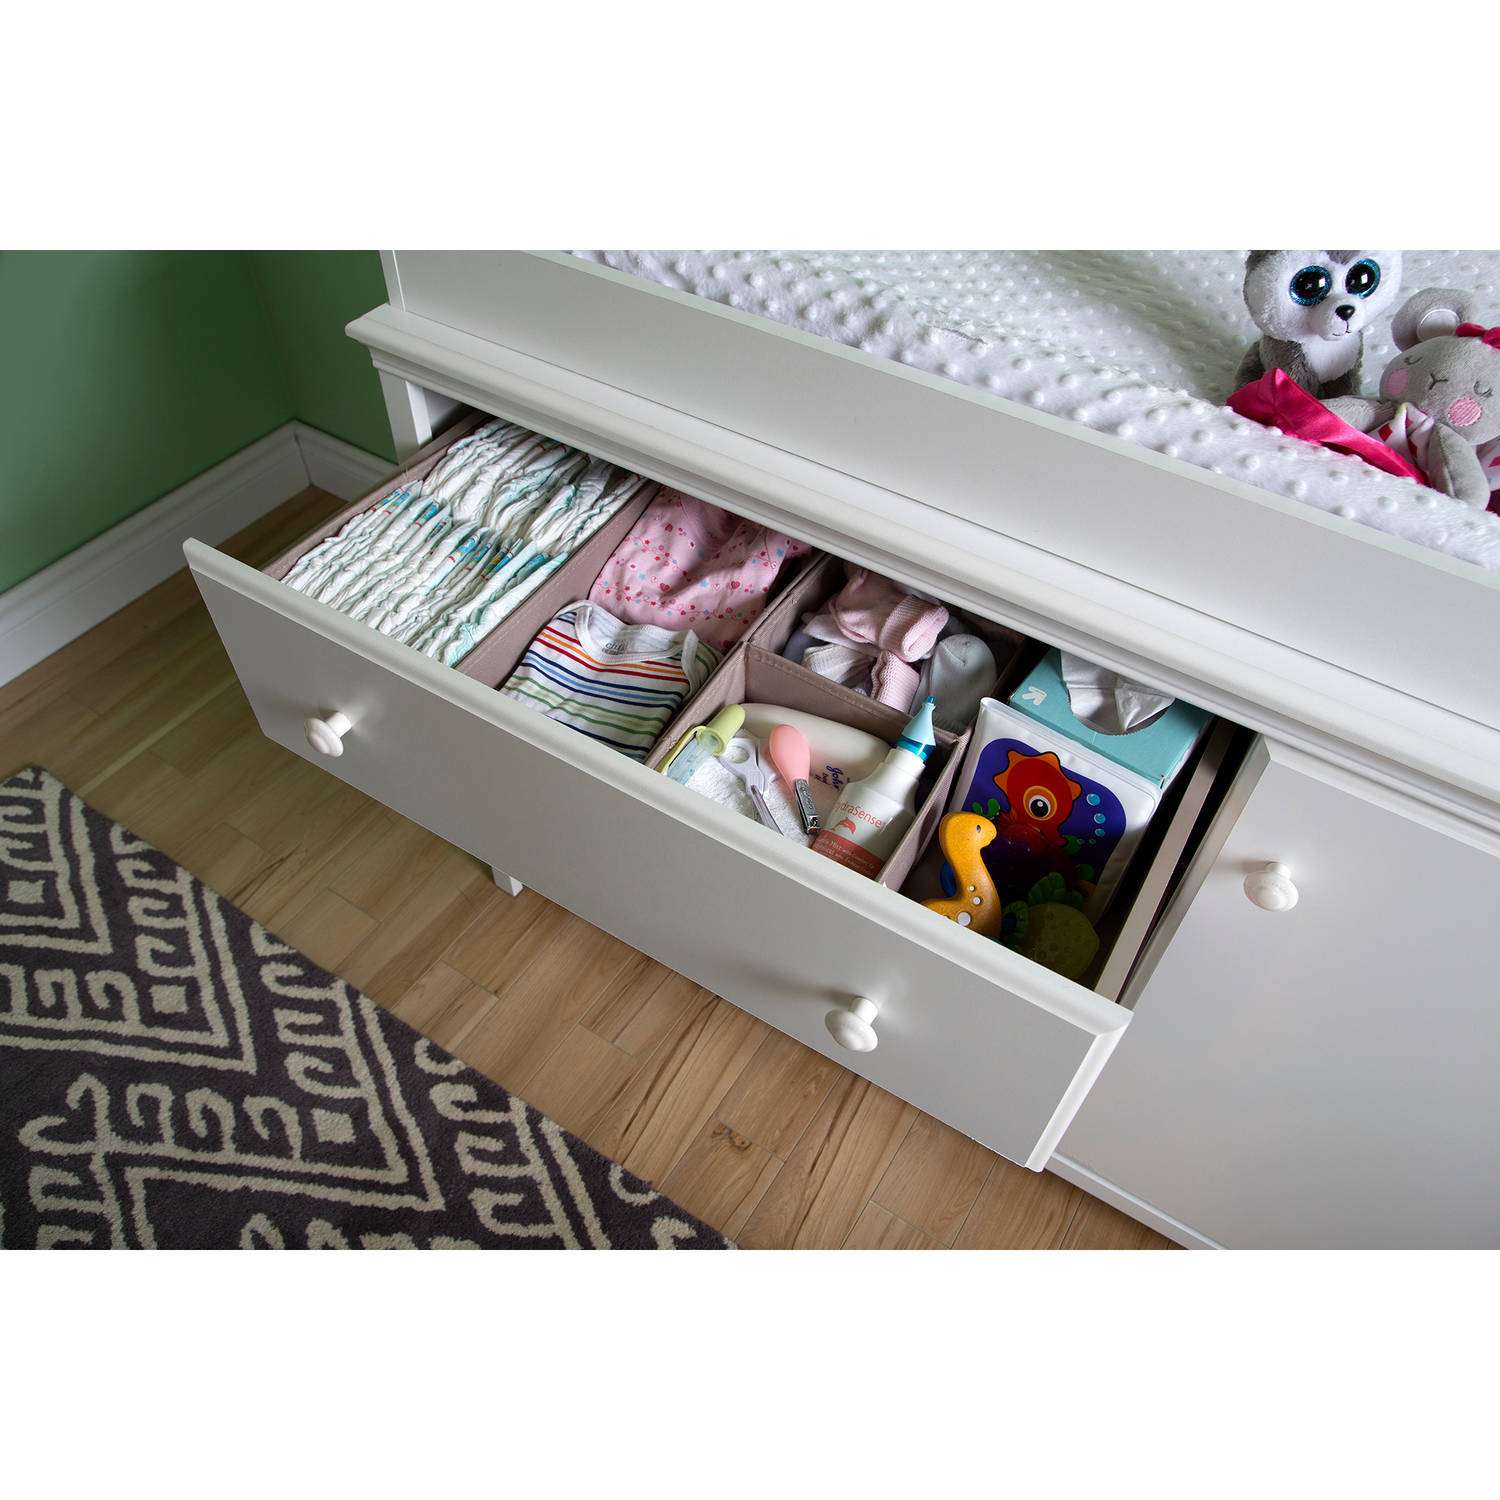 kitchen shelves out organizers trays containers most dresser nice for popular organizer dividers pull plates organization roll storage utensil drawer ideas drawers slide cabinets cabinet